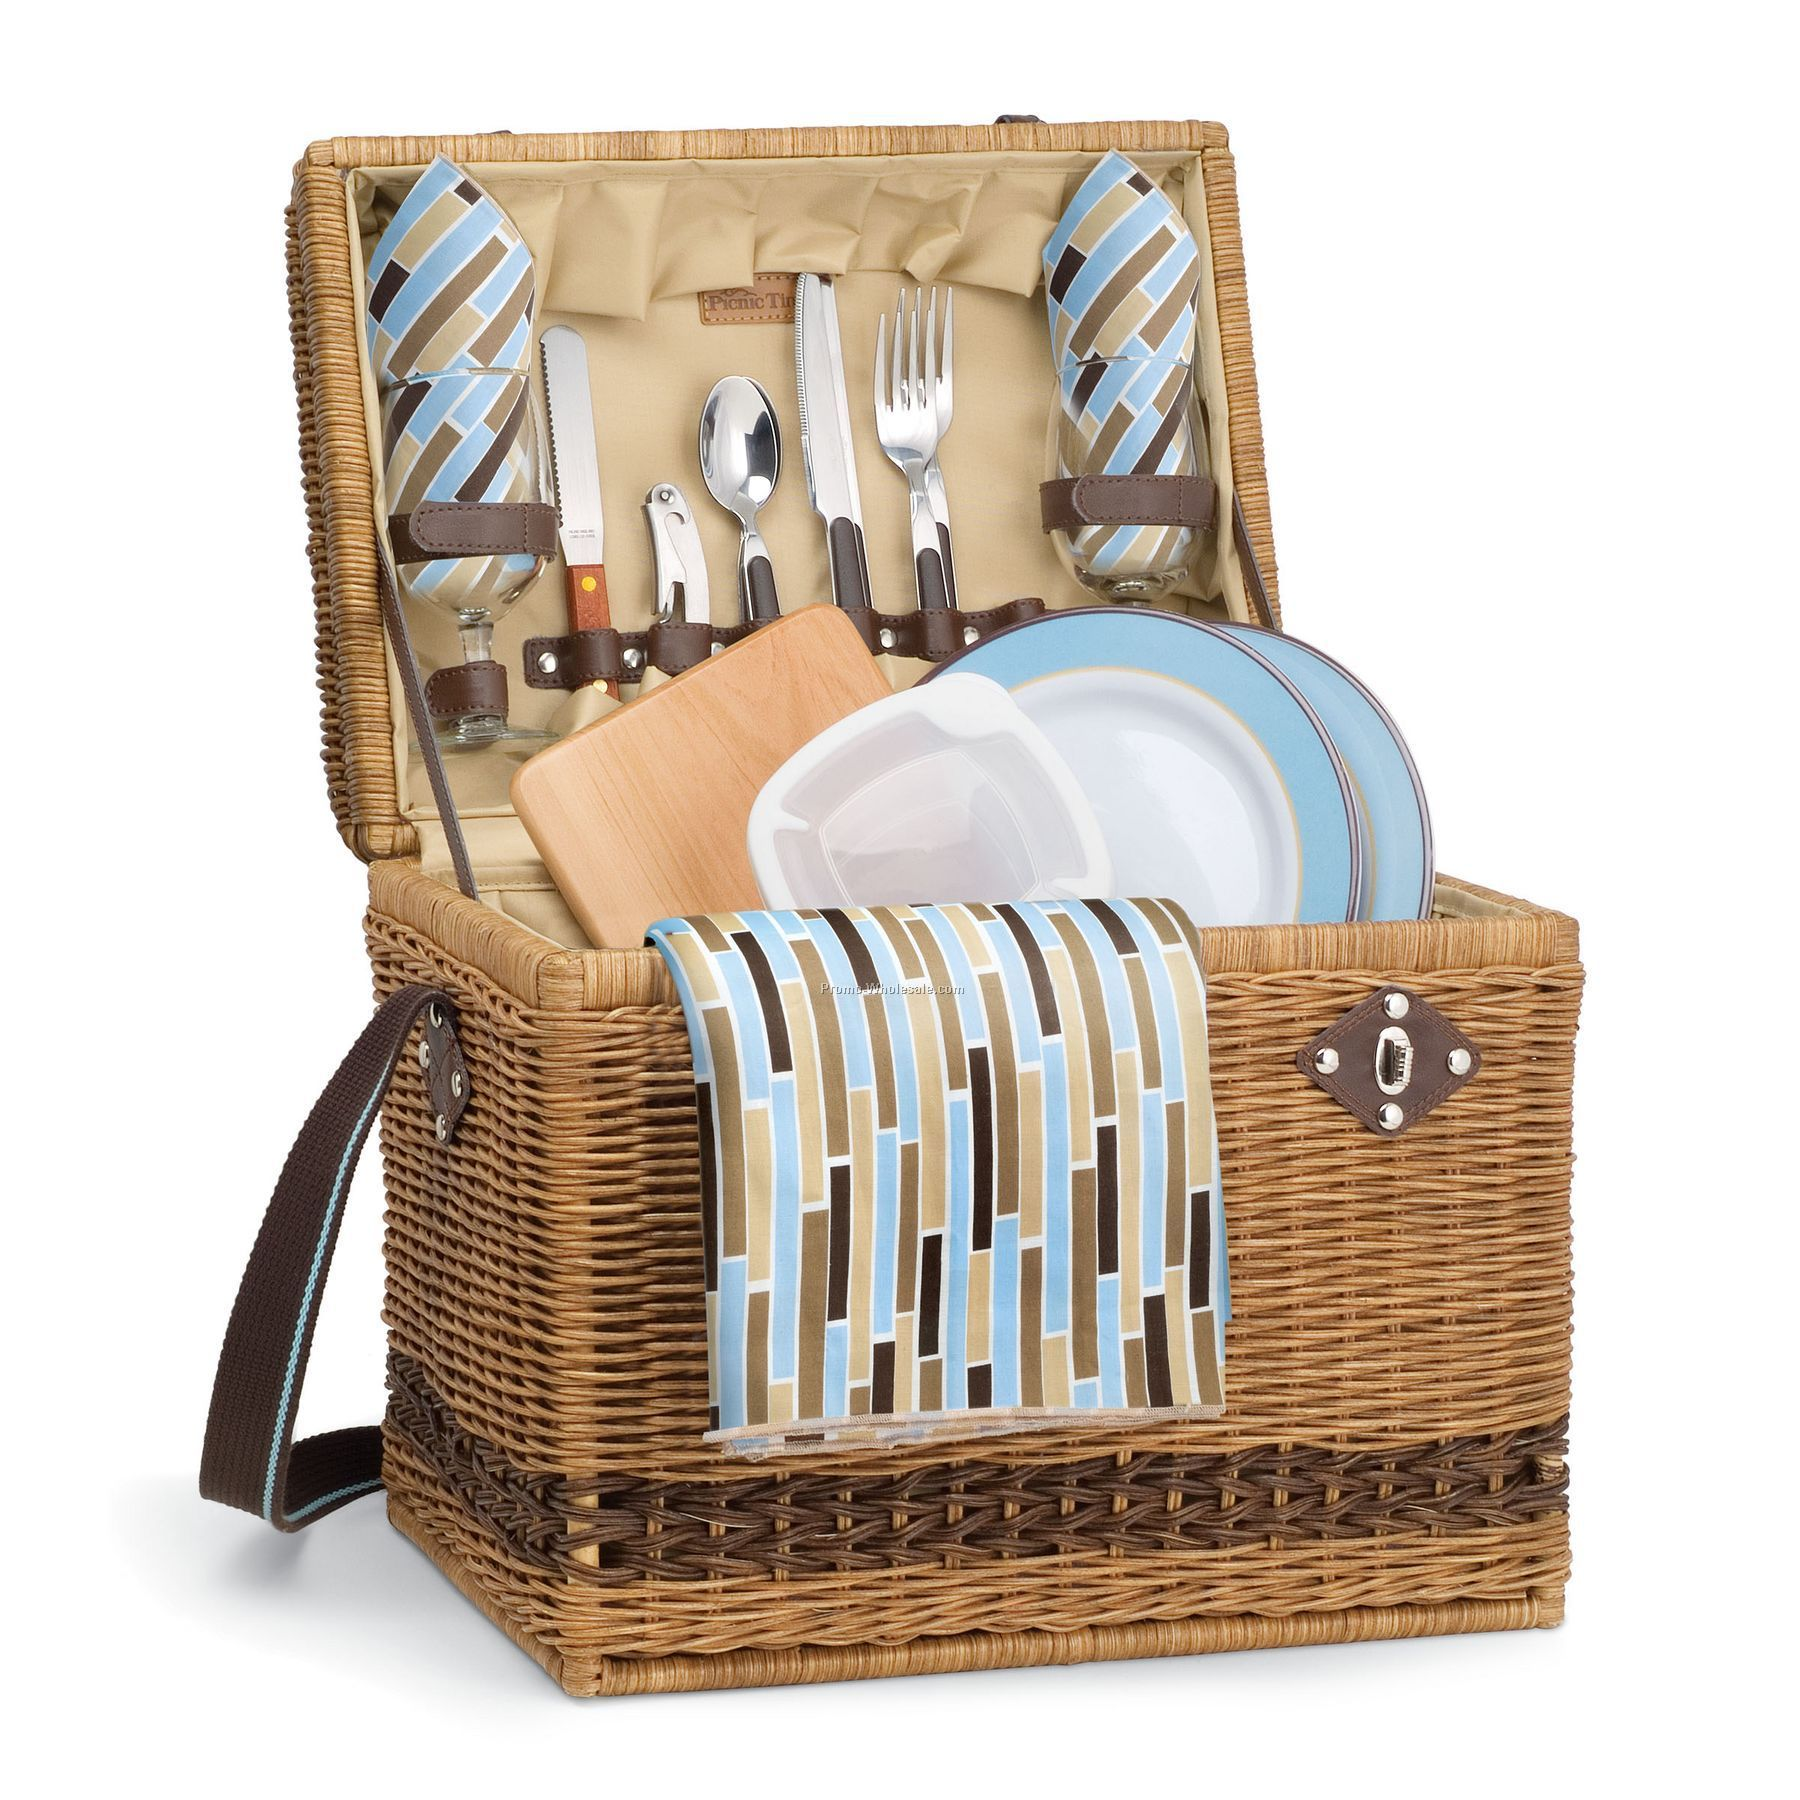 Yellowstone - Driftwood Picnic Basket With Deluxe Service For 2